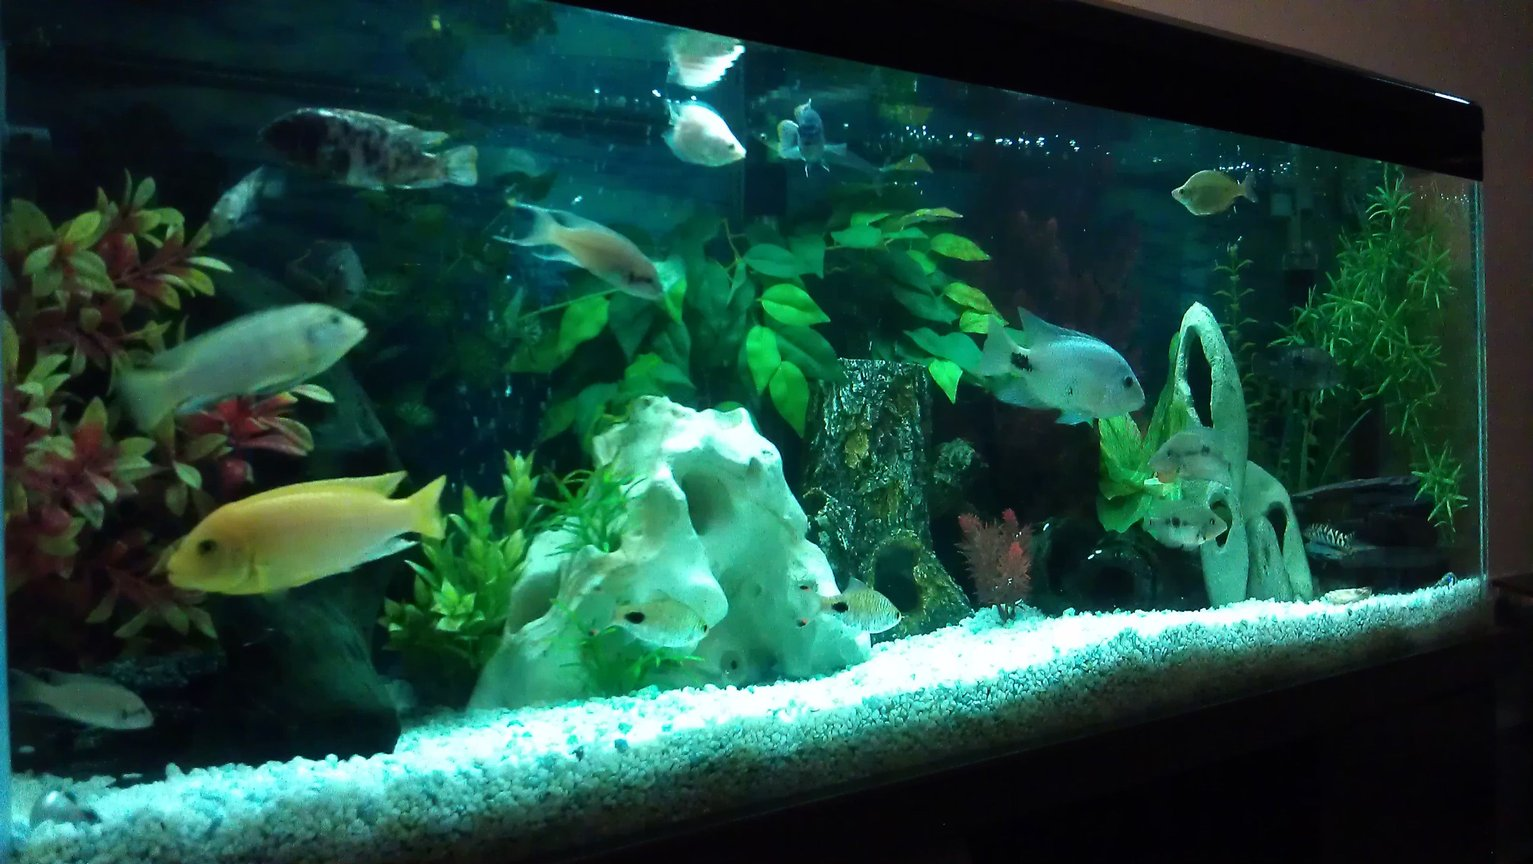 55 gallons freshwater fish tank (mostly fish and non-living decorations) - My cichlid tank after a good clean